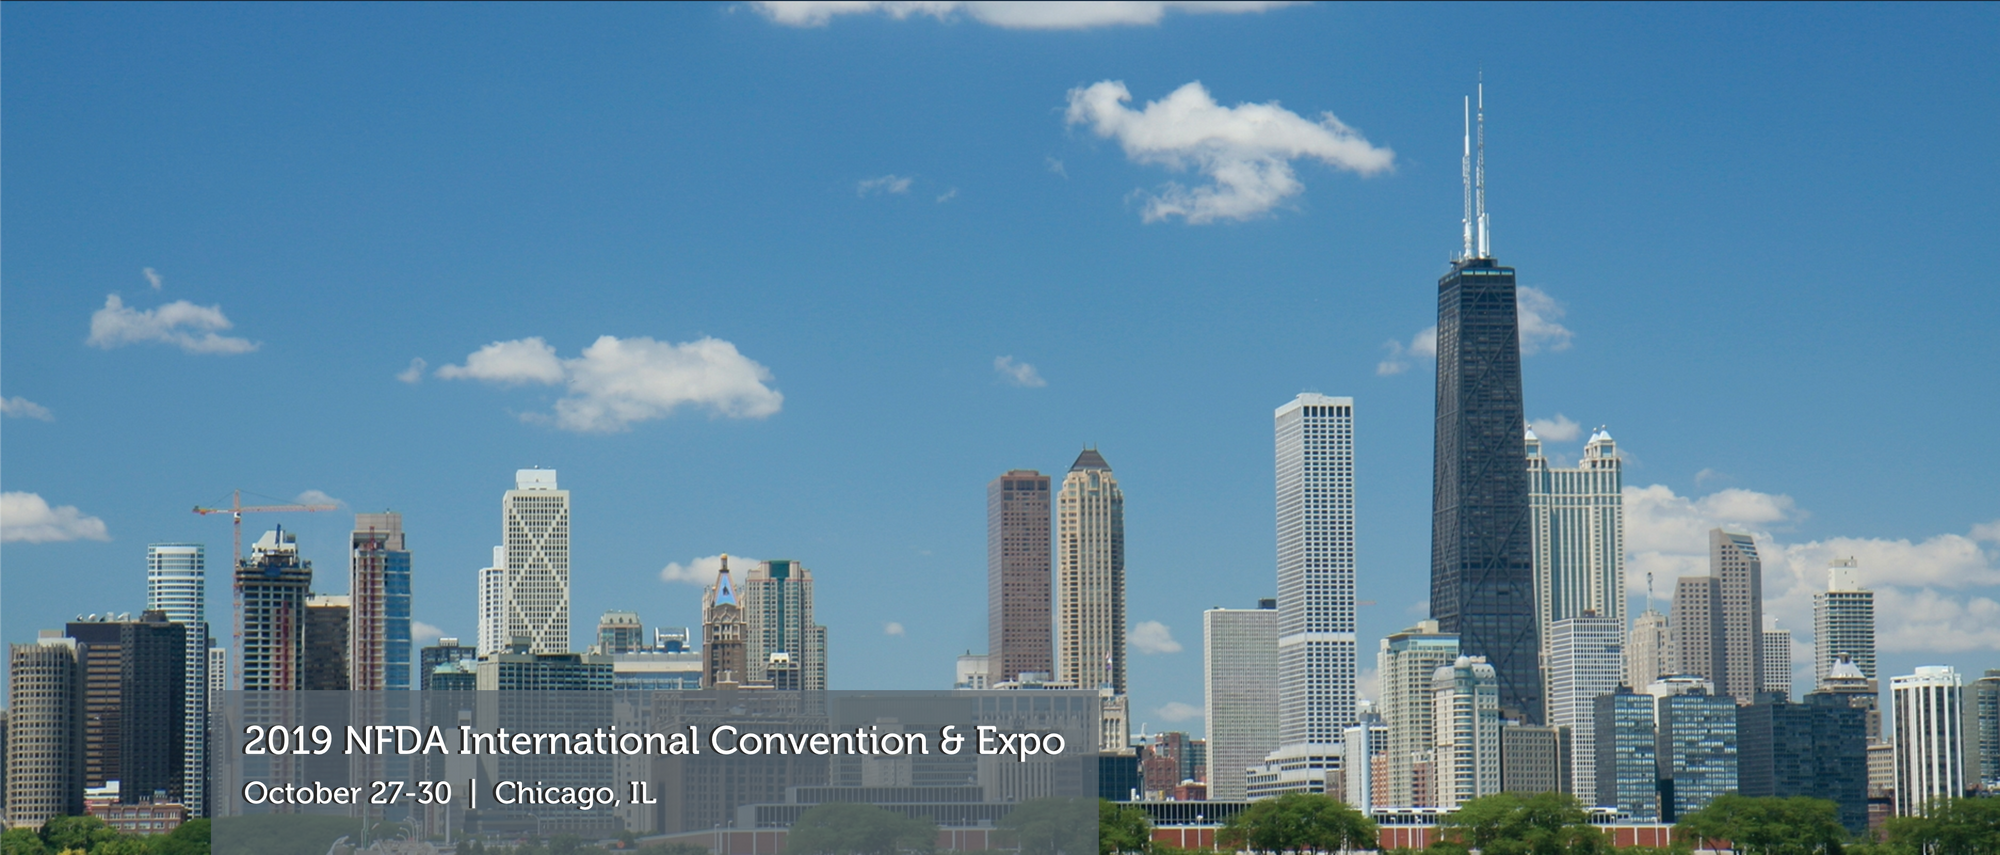 NFDA 2019, Chicago, IL, United States.